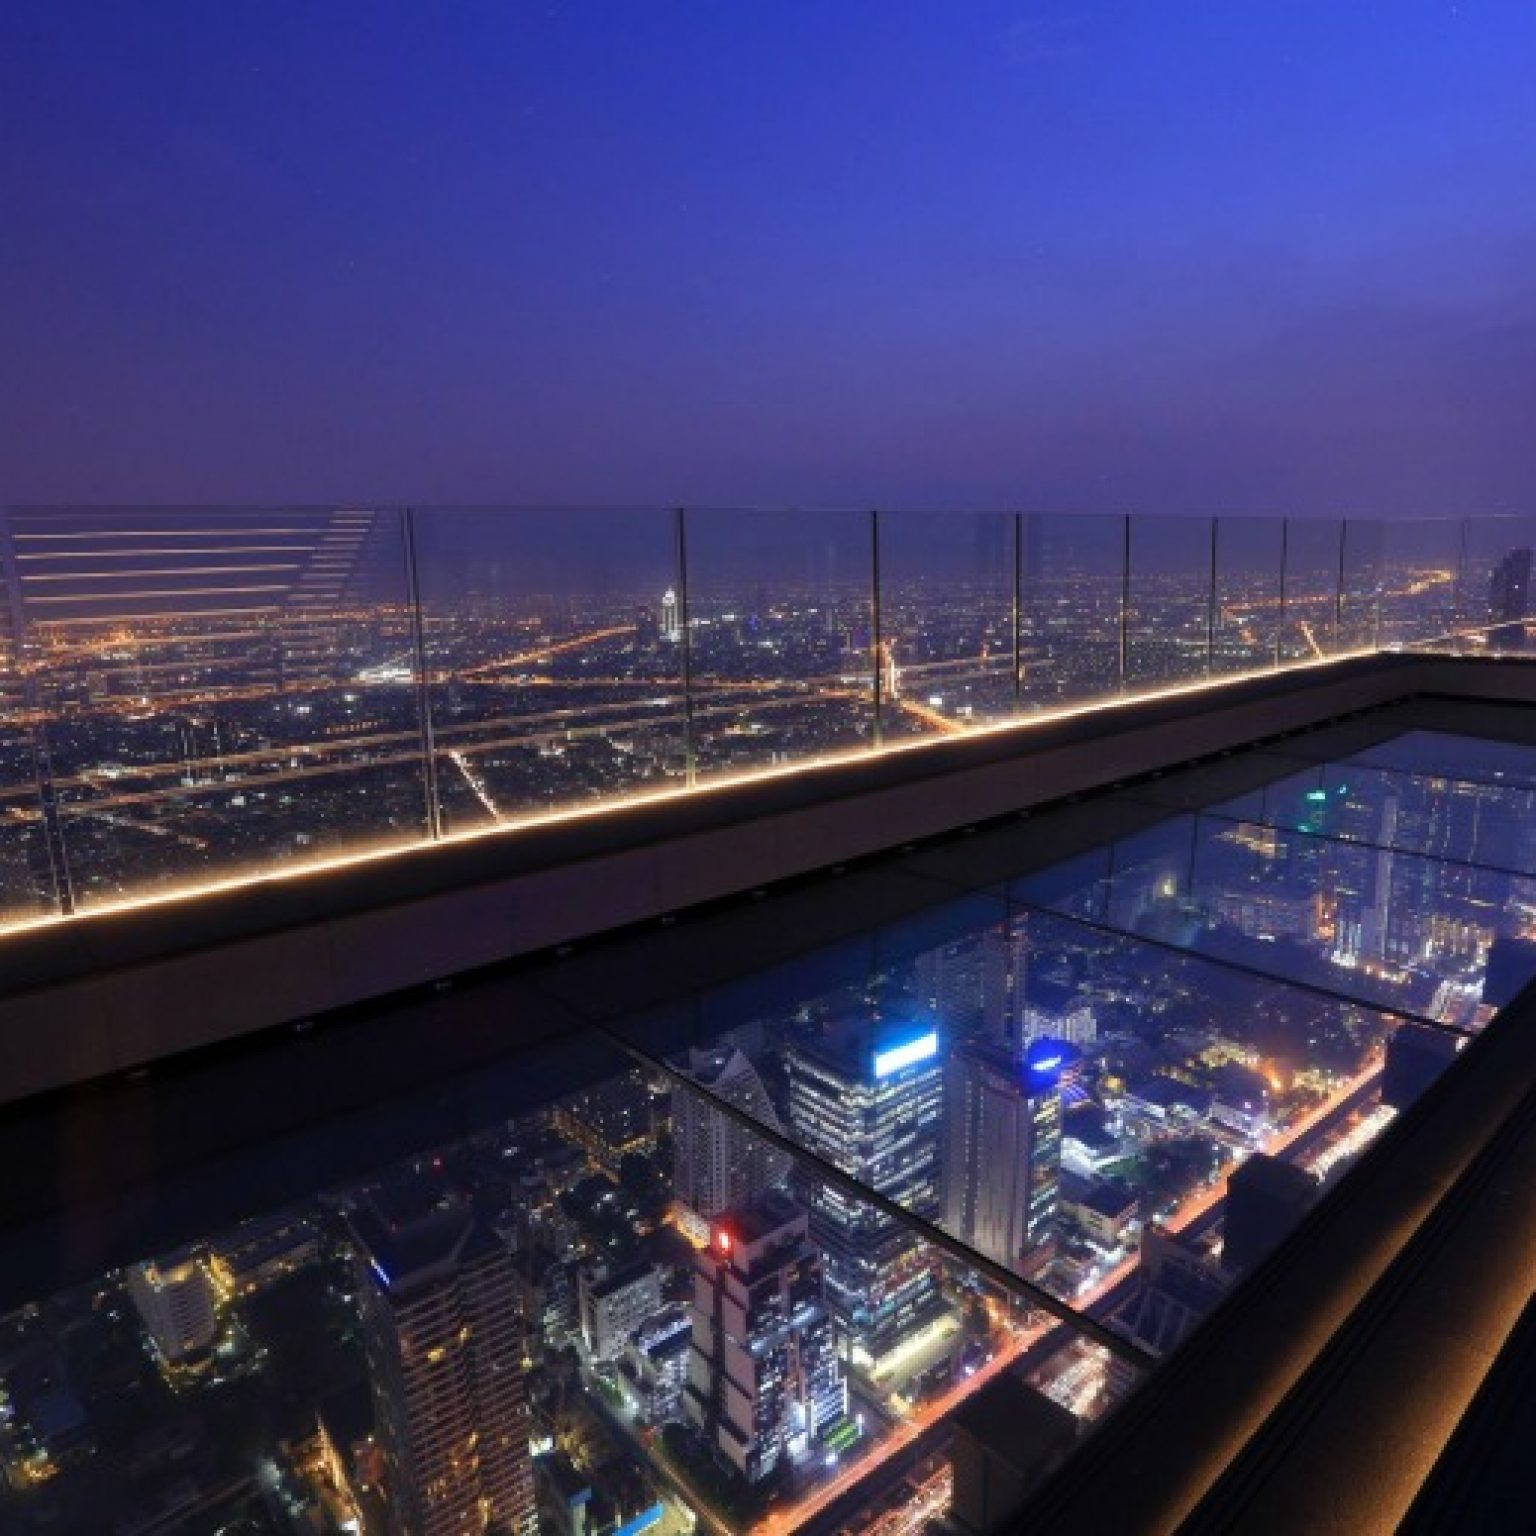 Attractions in Bangkok: The observation deck on the skyscraper Mahanakhon